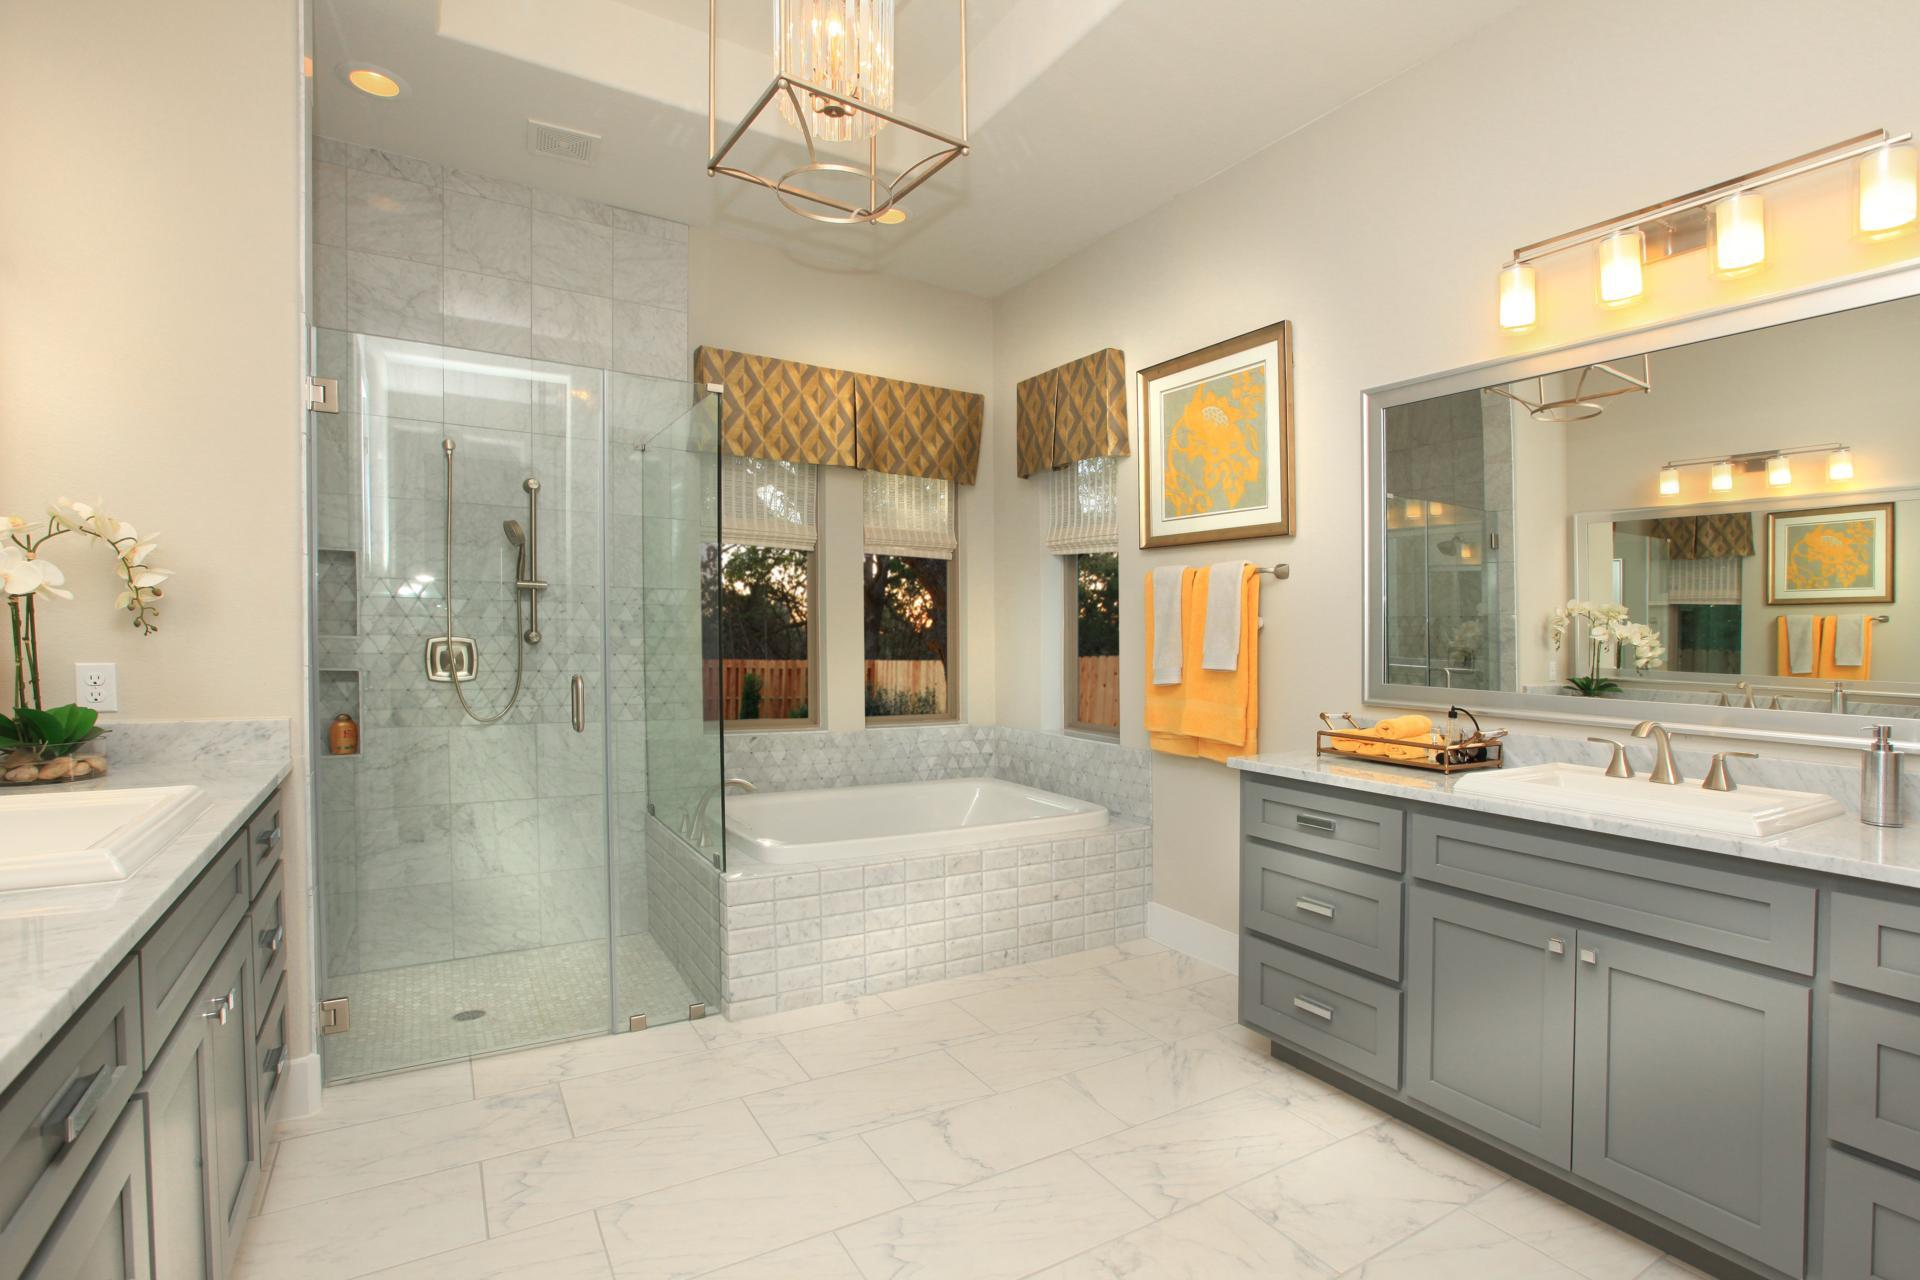 Bathroom featured in the Tinsley By Drees Custom Homes in Austin, TX